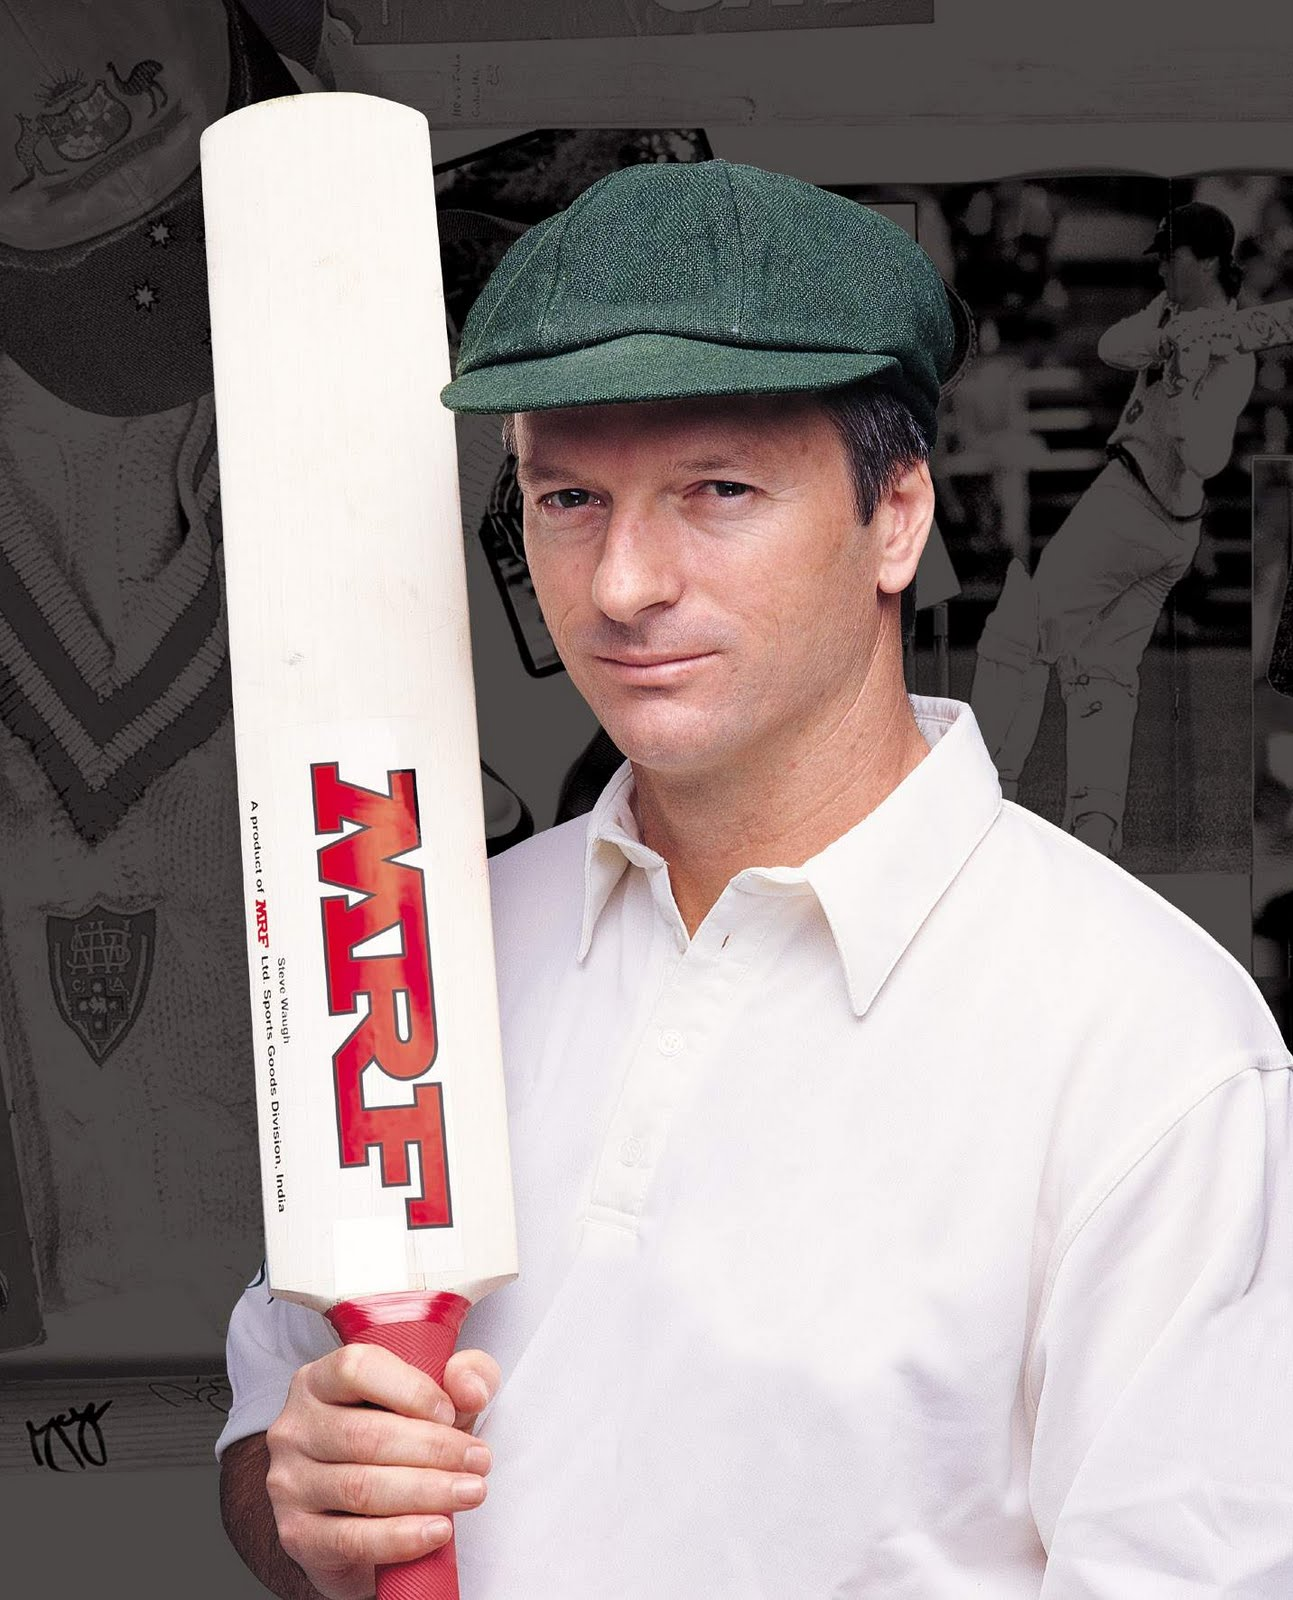 steve waugh and mark relationship help